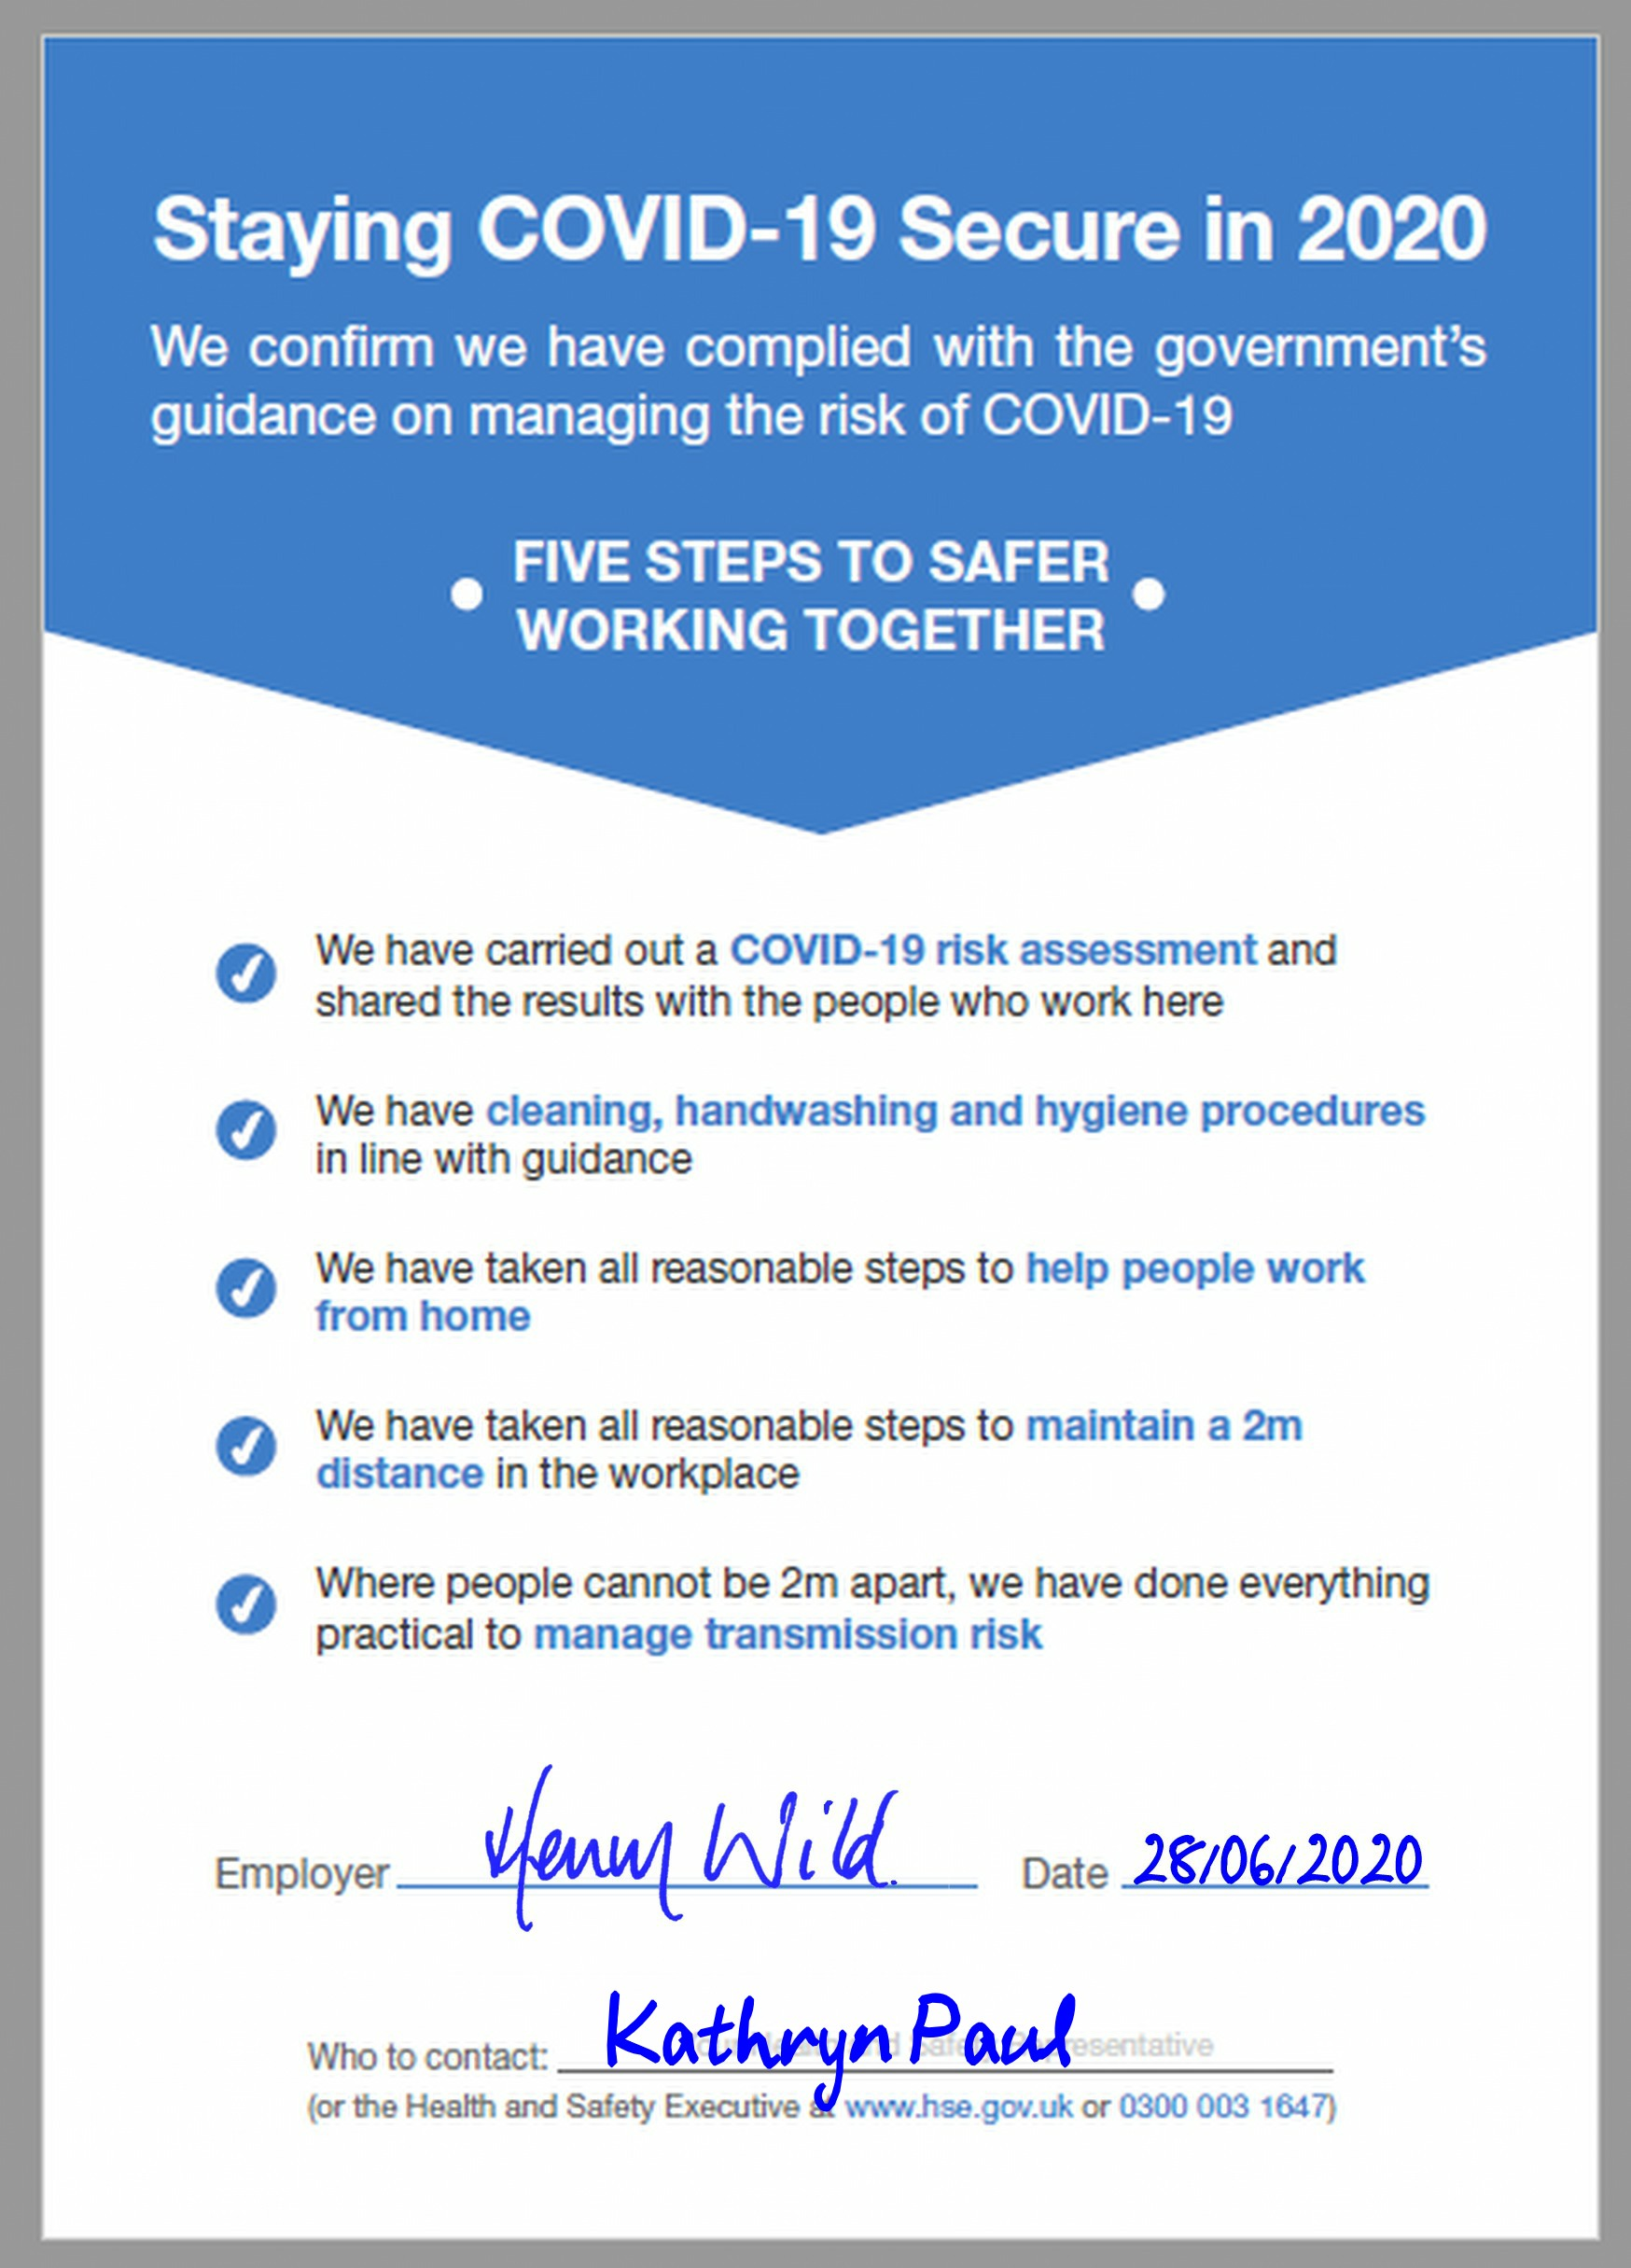 Covid-19 Safety Certificate